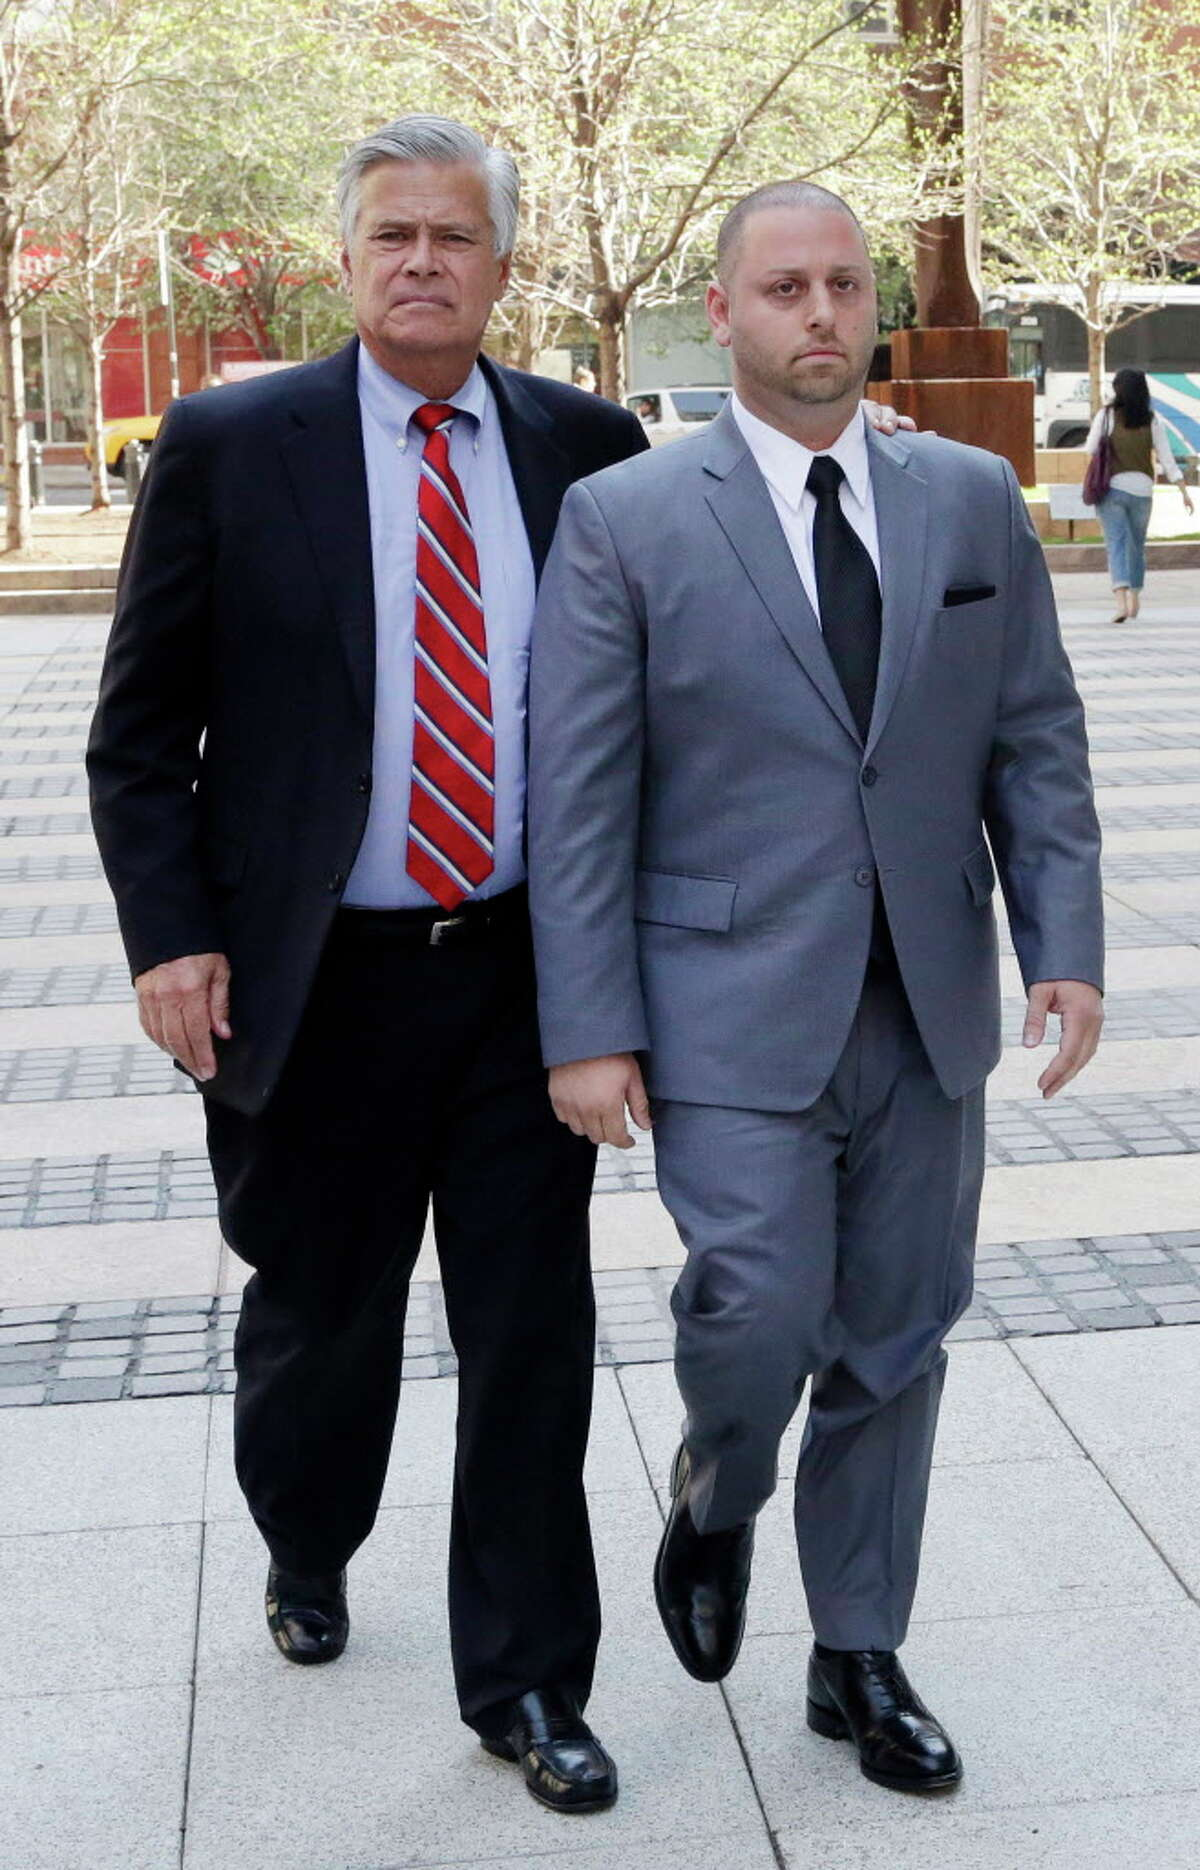 FILE- In this May 4, 2015, file photo New York Senate Majority Leader Dean Skelos, left, and his son Adam arrive at FBI offices in New York. Jury selection begins Monday, Nov. 16, in the Manhattan federal court in the extortion and bribery trial of Skelos and his son, Adam. (AP Photo/Mark Lennihan, File) ORG XMIT: NYR303